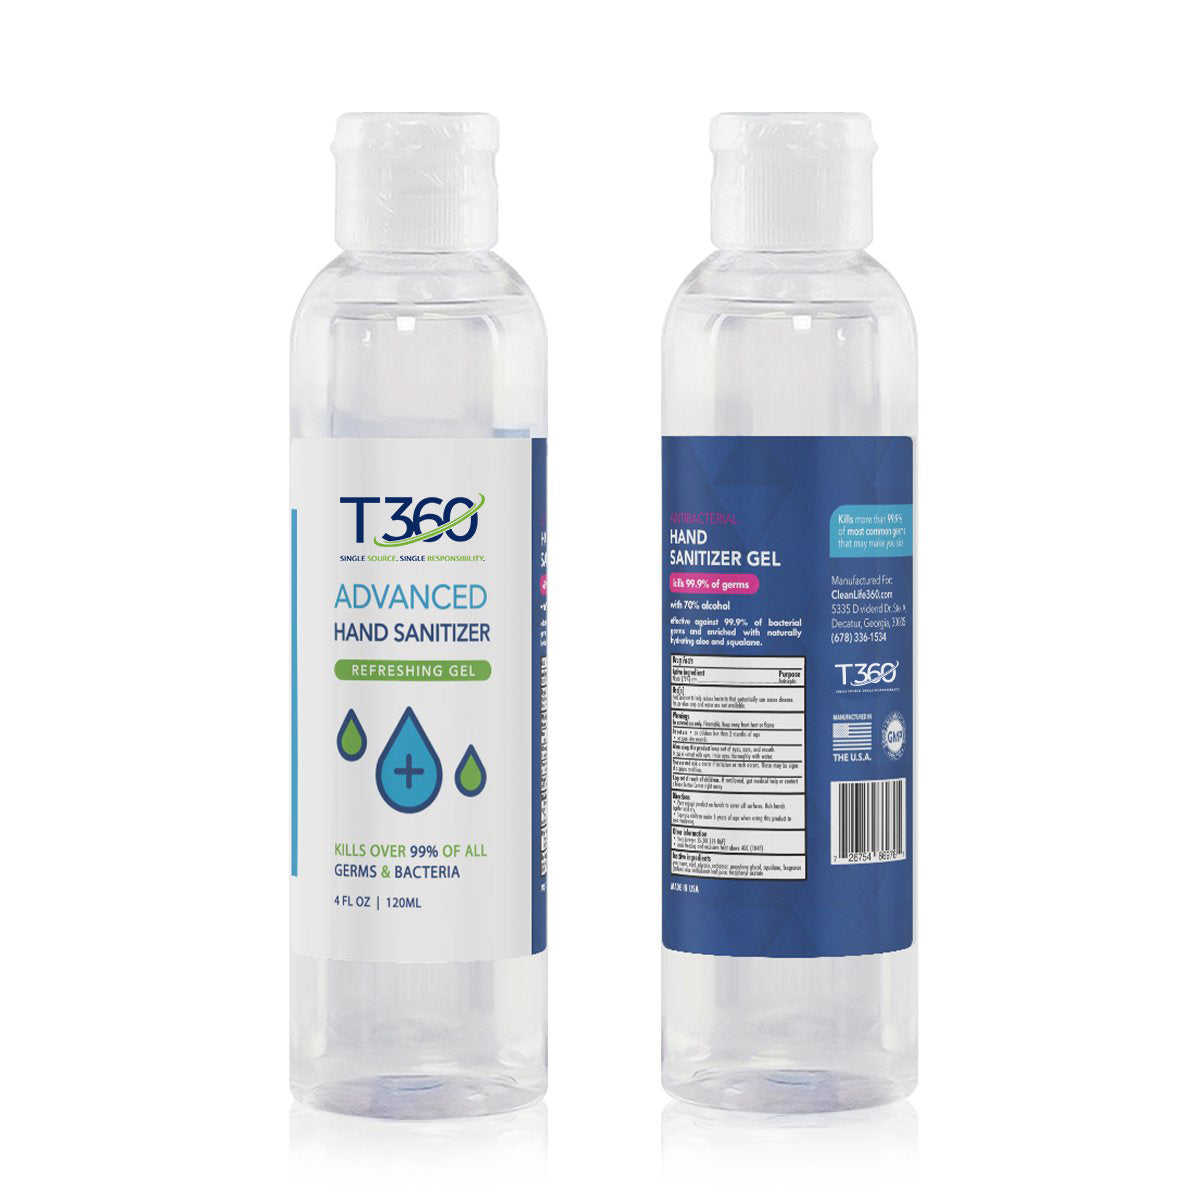 4 oz Hand Sanitizer - Think360 Inc